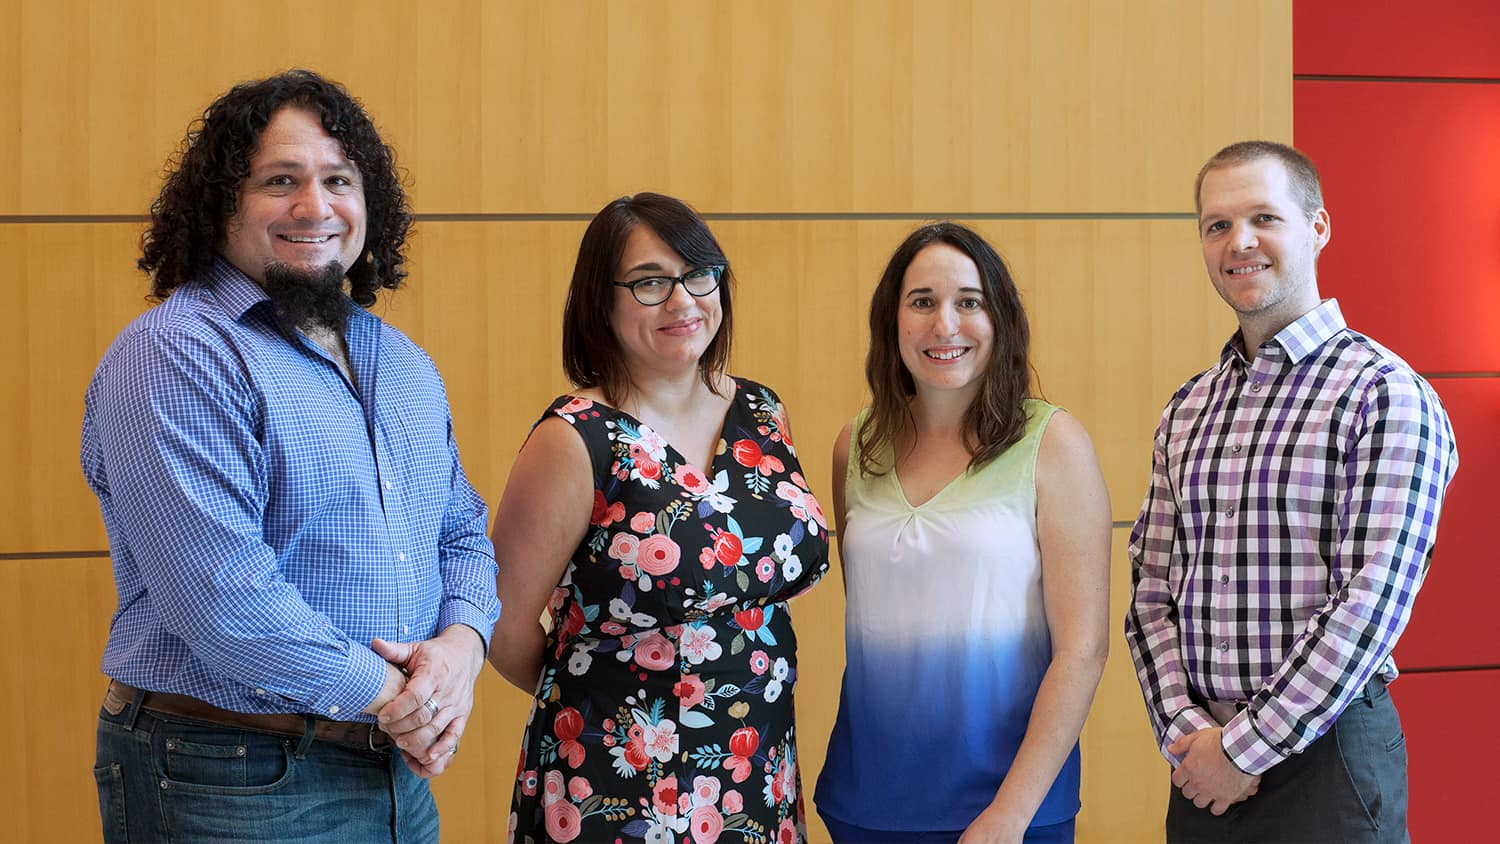 DELTA 2018-2019 Faculty Fellows left to right: James McConnell, Melissa Ramirez, Stacy Supak and Justin Post. Photo by Mike Cuales.